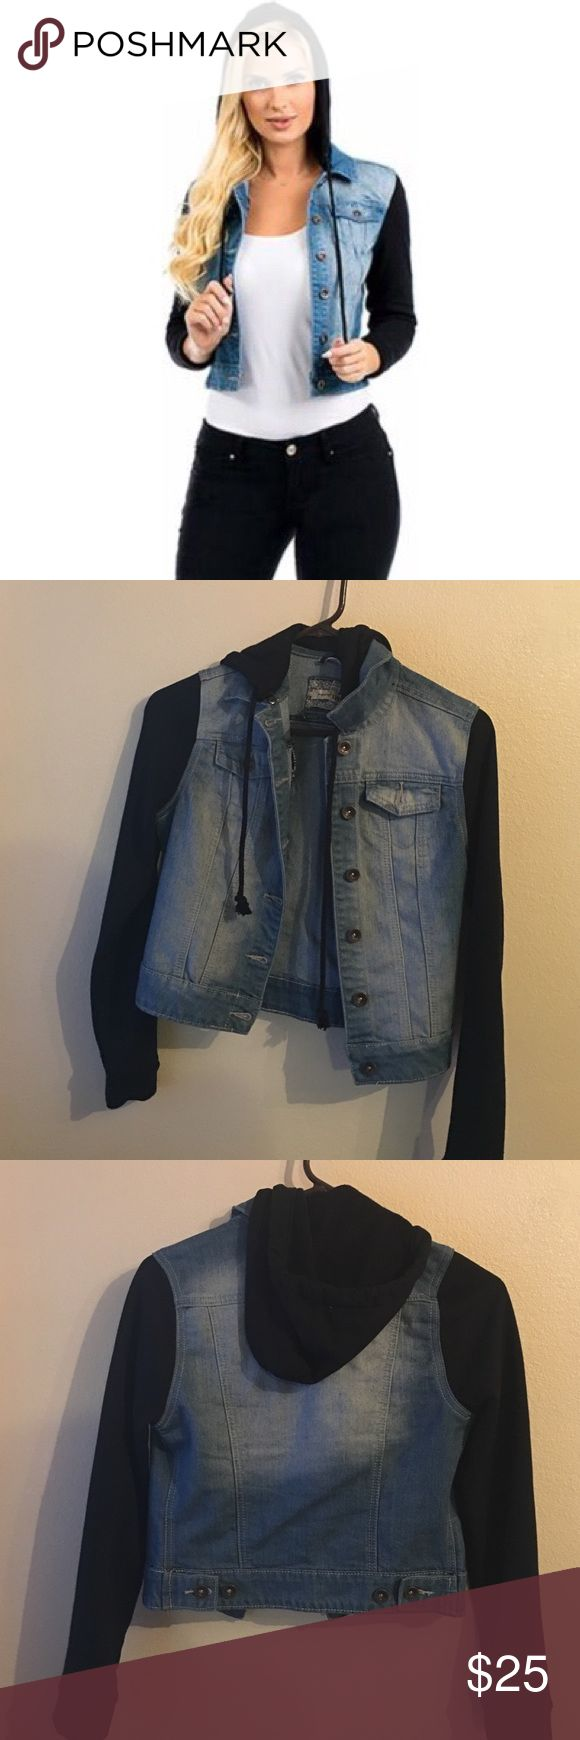 Black sleeve jean jacket Worn once. In perfect condition.  Juniors YMI jacket features a soft sweater material for the hood and sleeves, and a denim bodice with chest pockets and a button front. 57% Cotton, 32% Polyester, 10% Rayon, 1% Spandex. Machine wash. Tumble dry. YMI Jackets & Coats Utility Jackets